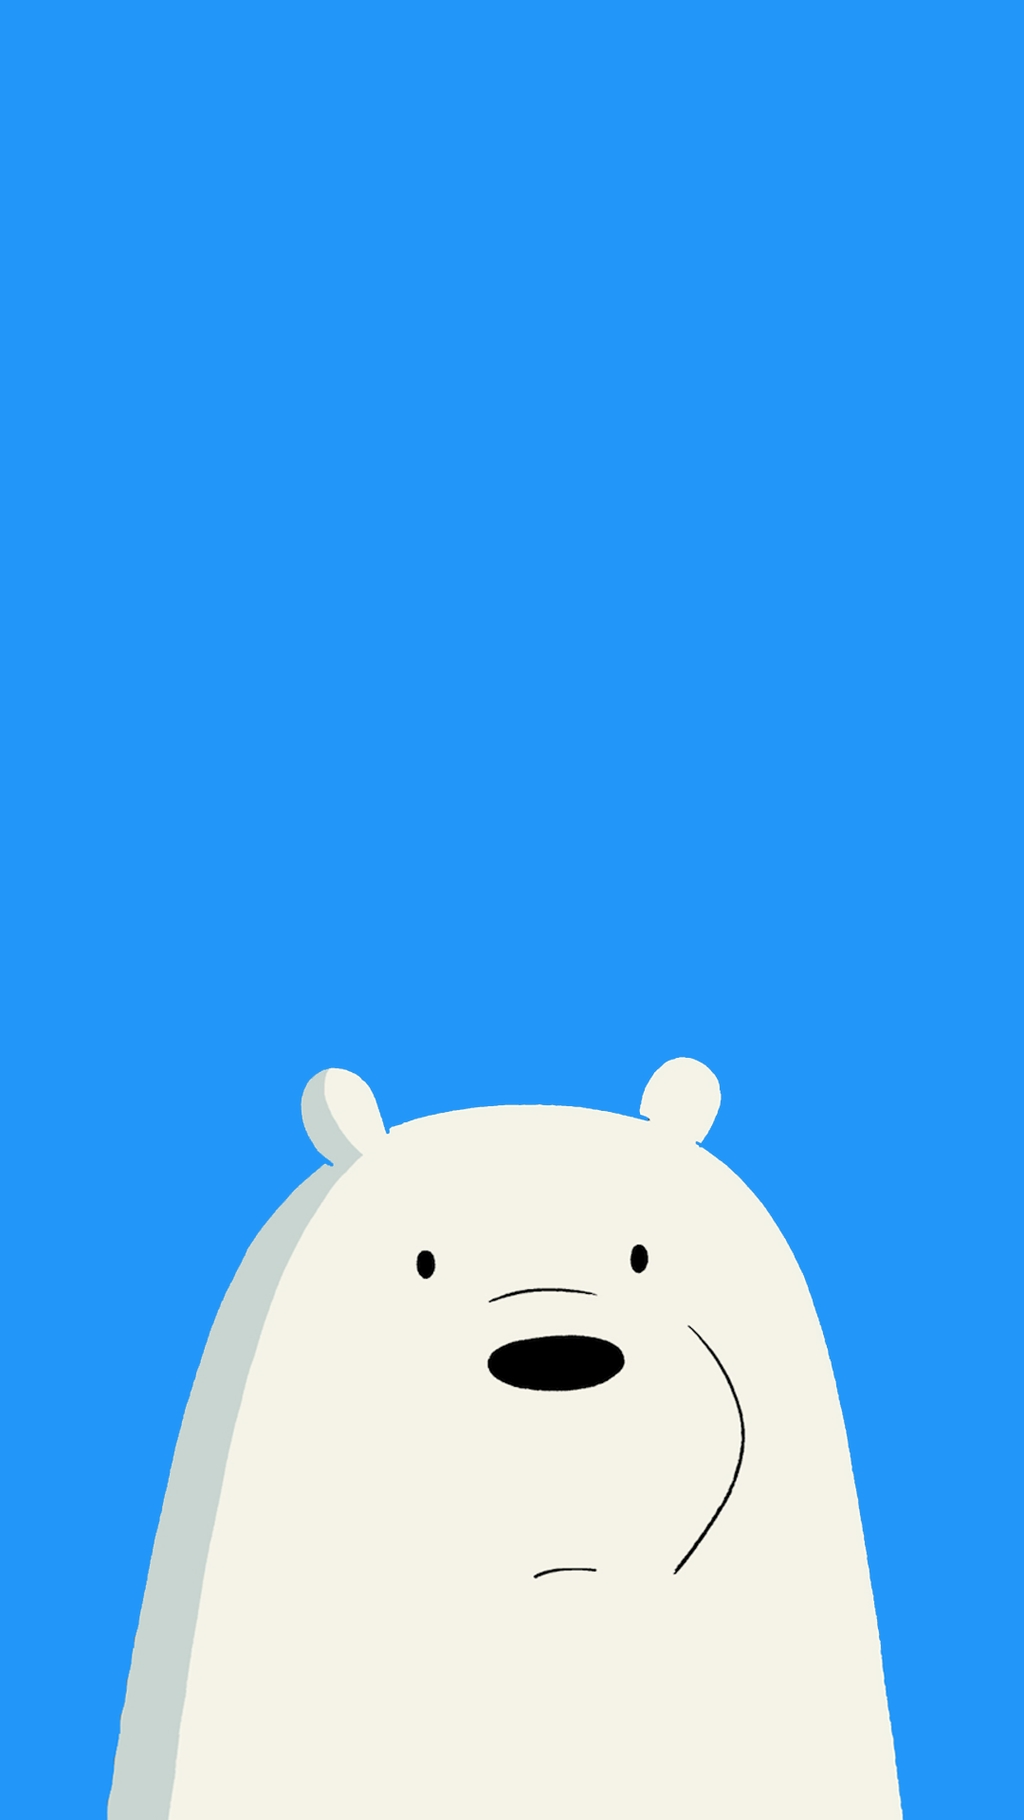 pinynnhi on ynnh | pinterest | bare bears, wallpaper and